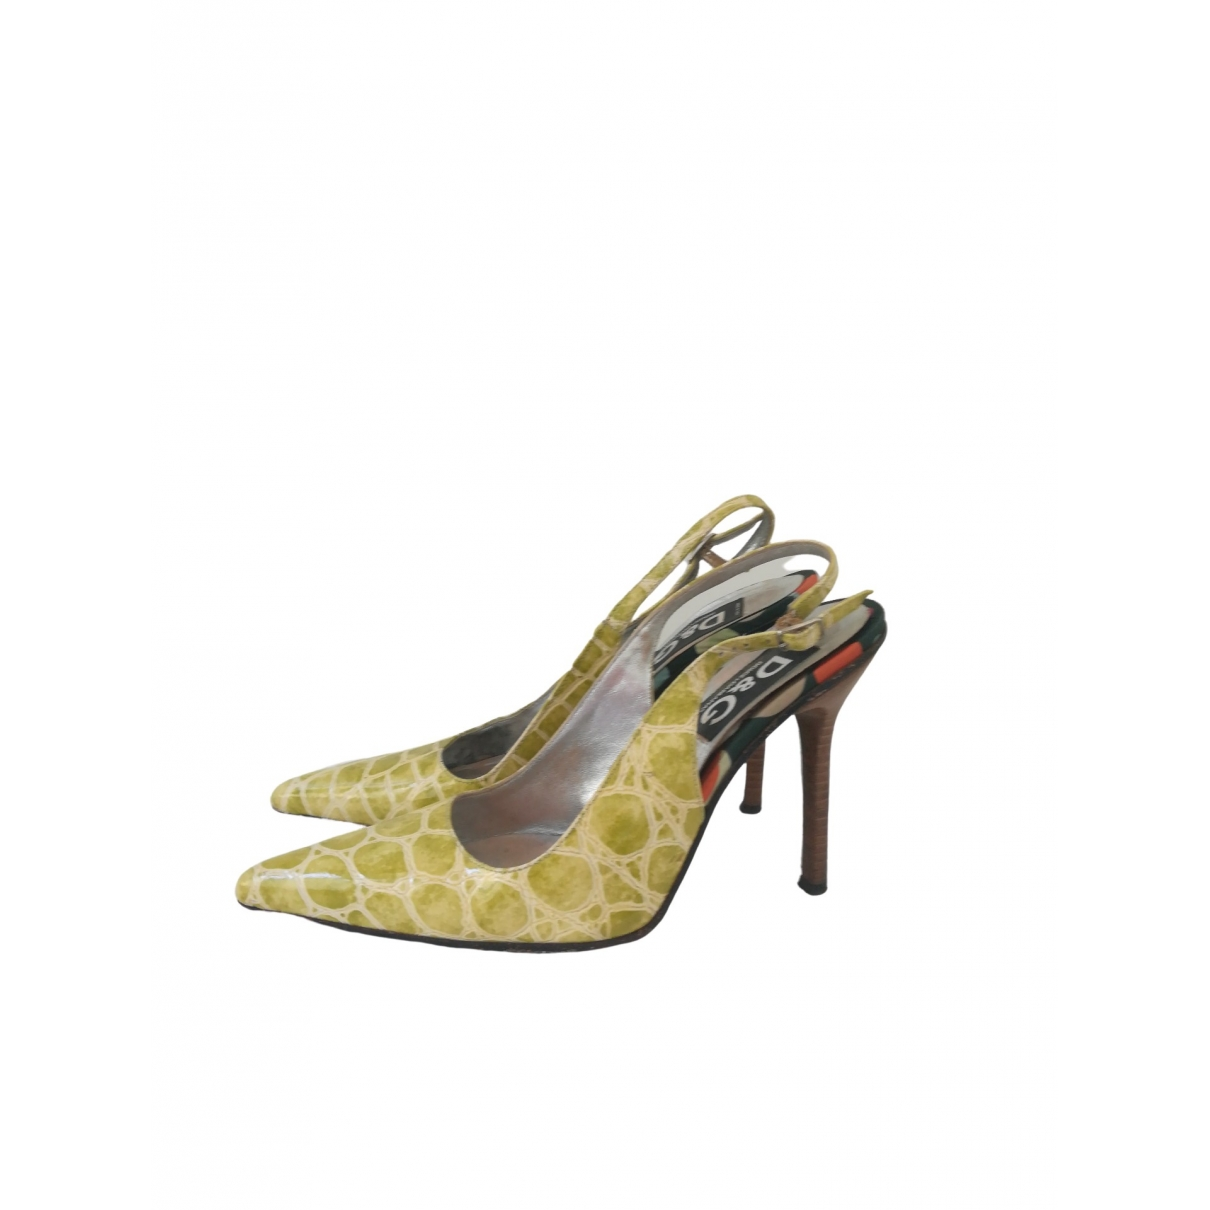 D&g \N Yellow Patent leather Heels for Women 38 IT